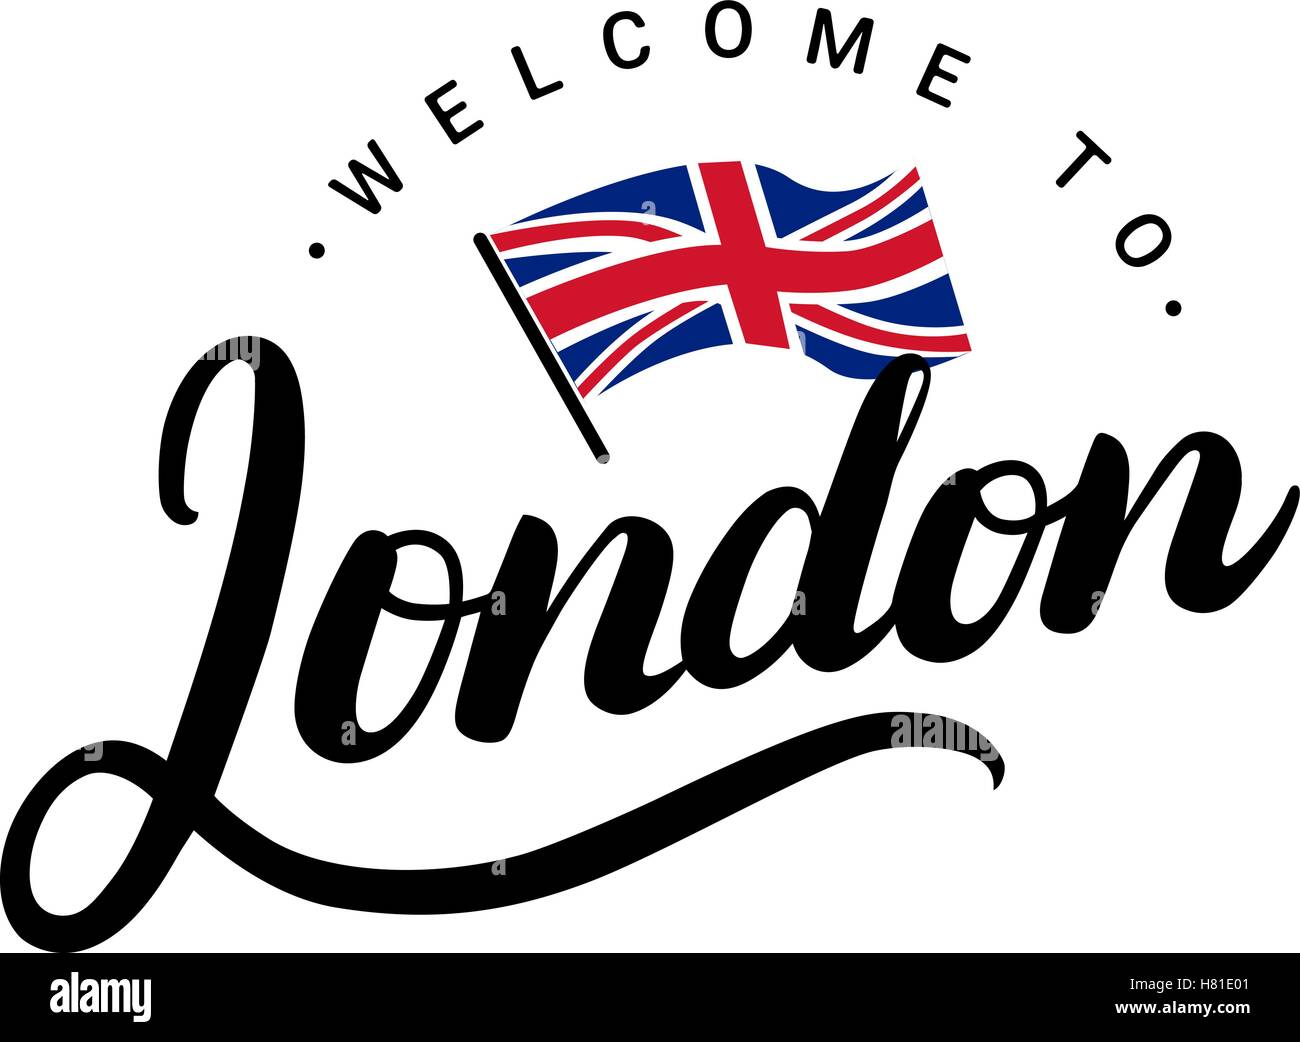 British Welcome Greeting Gallery Greetings Card Design Simple